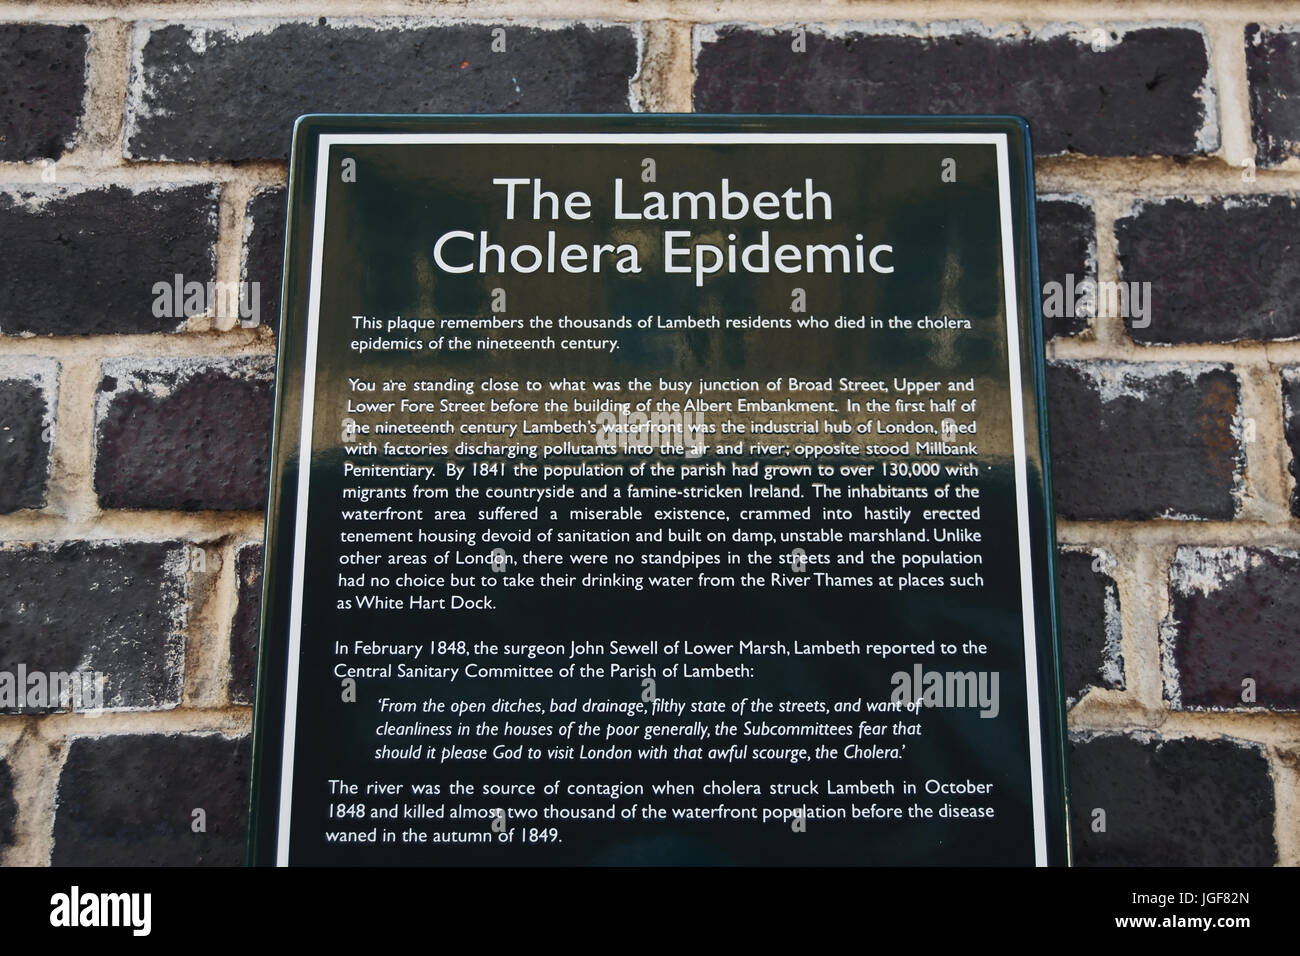 wall plaque commorating and describing the mid-1800s outbreak of cholera in lambeth, london, england - Stock Image